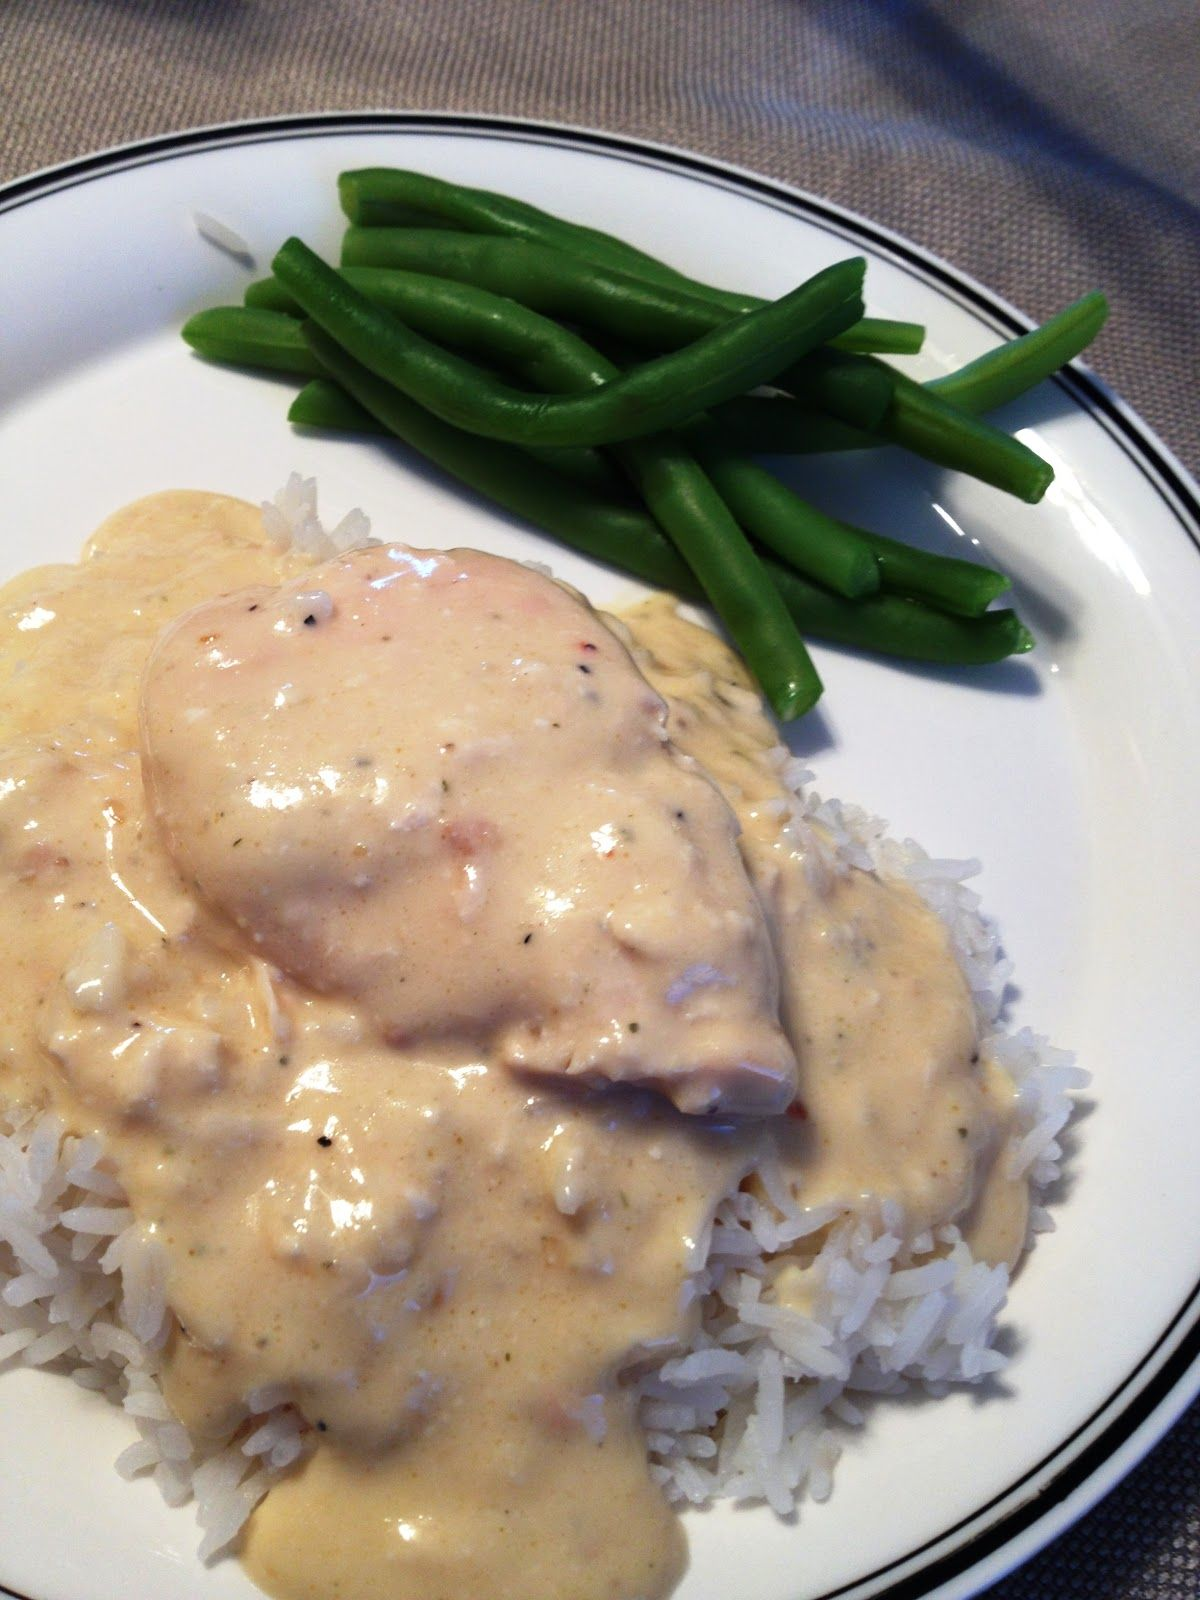 Adventures Creamy Crock Pot Chicken I Used 6 Market Day Chicken Breasted Added An Extra Can